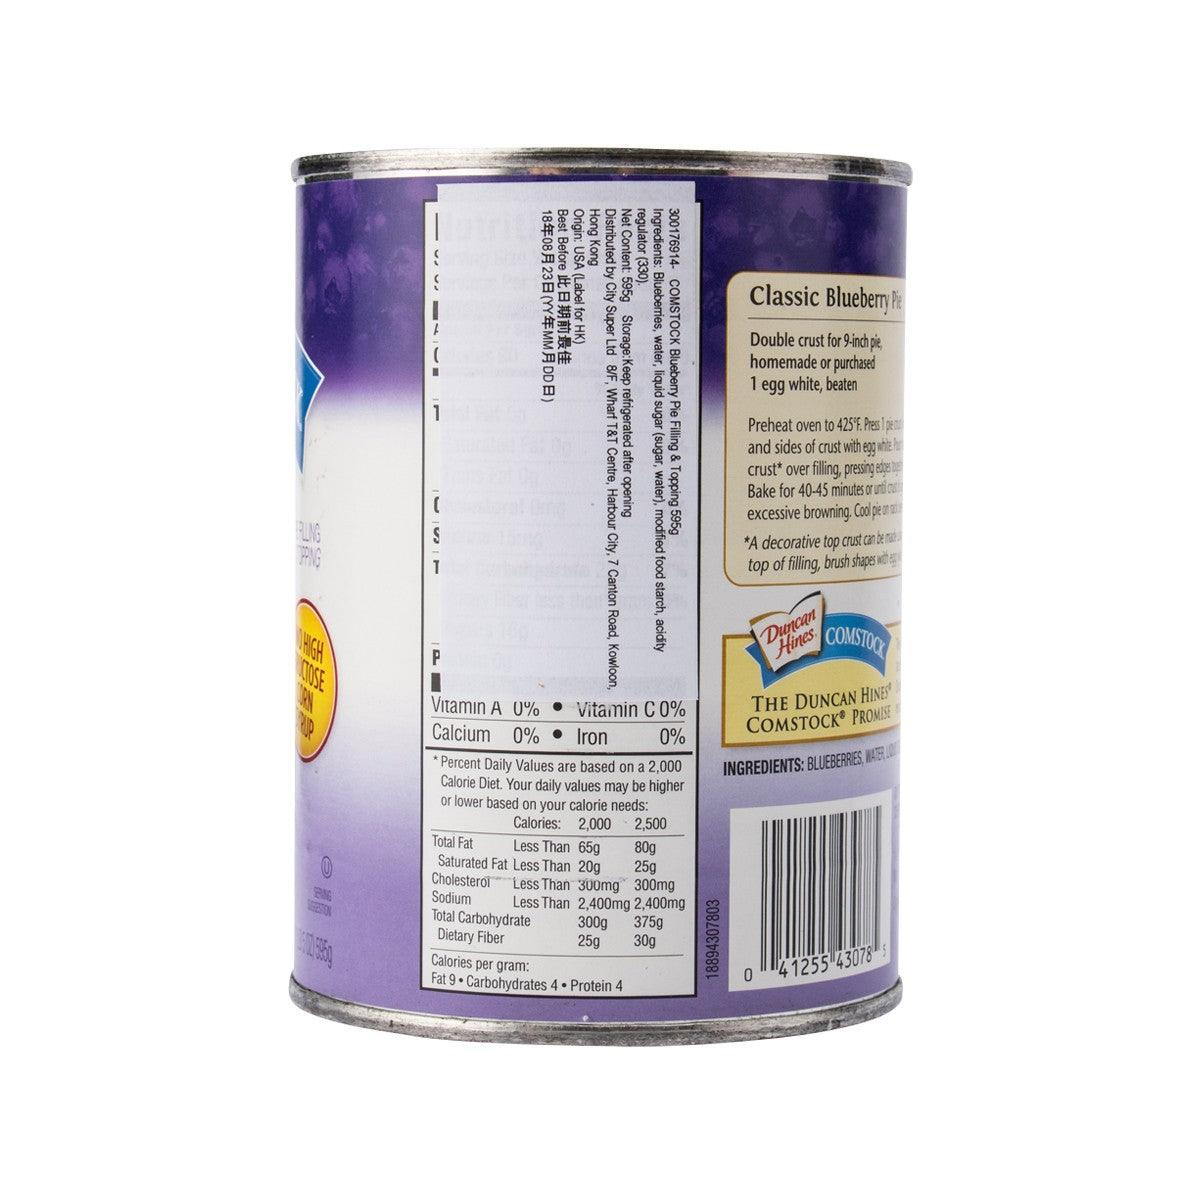 COMSTOCK Blueberry Pie Filling & Topping (595g)